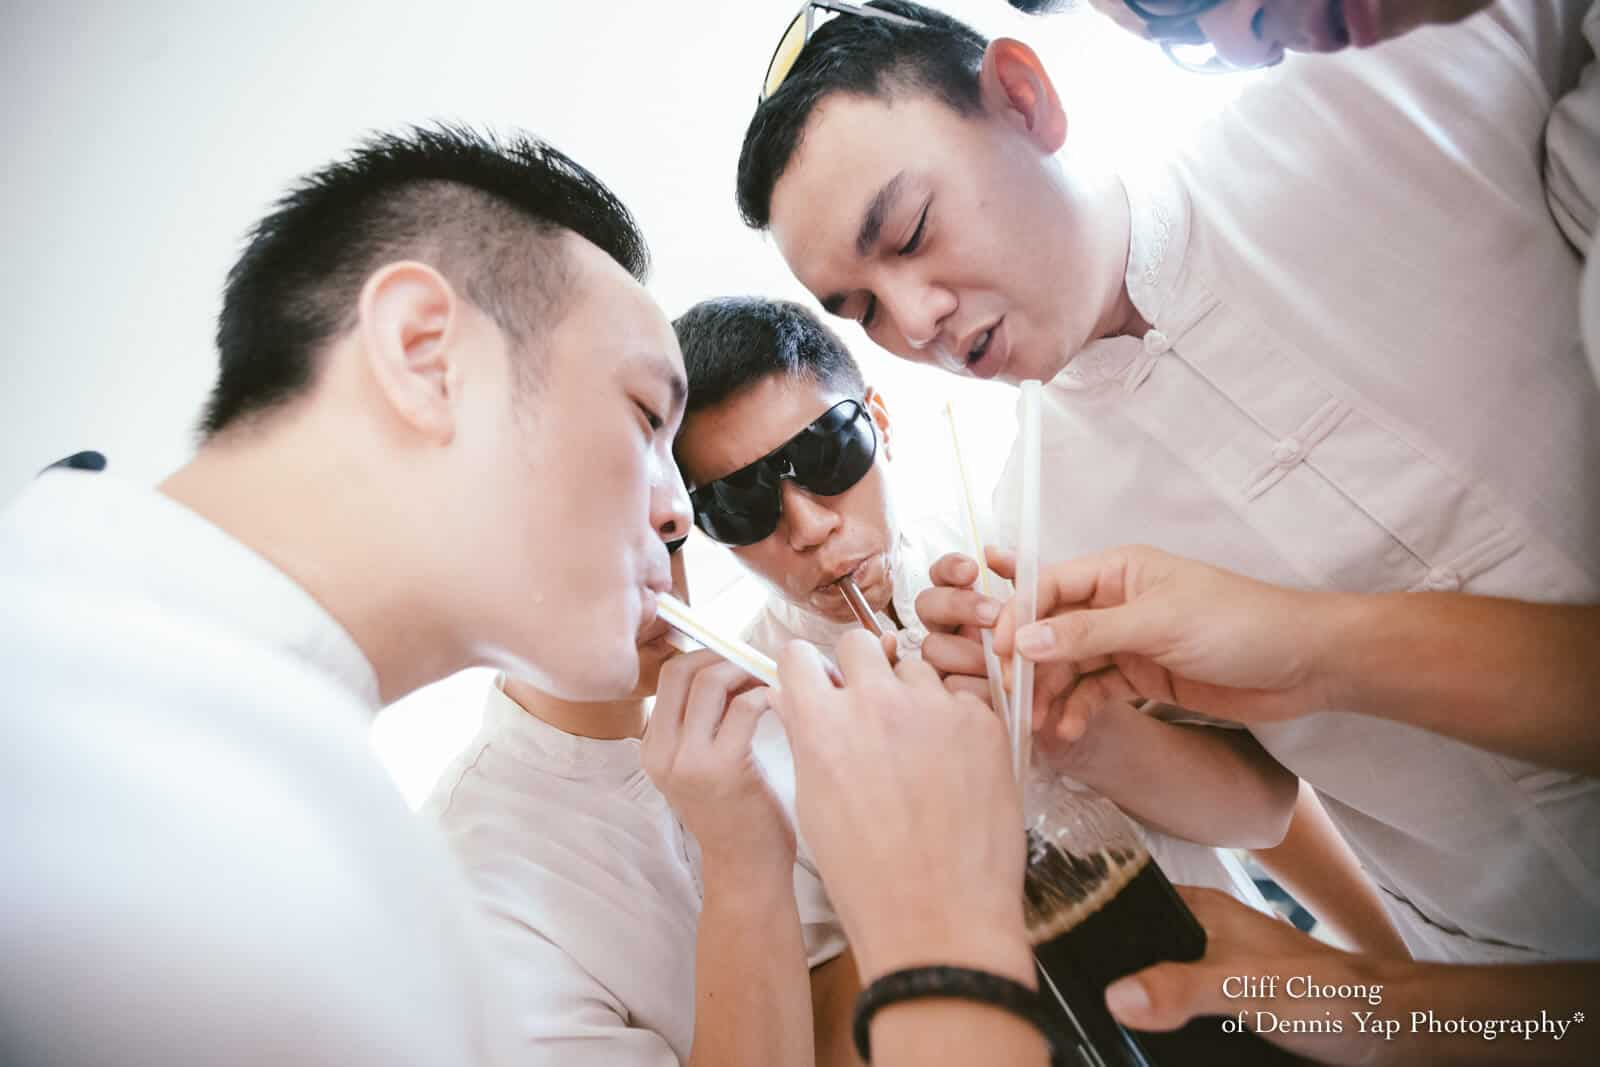 Wedding Day in Kota Kinabalu Sabah Malaysia Shangri-La Tanjung Aru Resort and Spa Cliff Choong Photography groom entourage